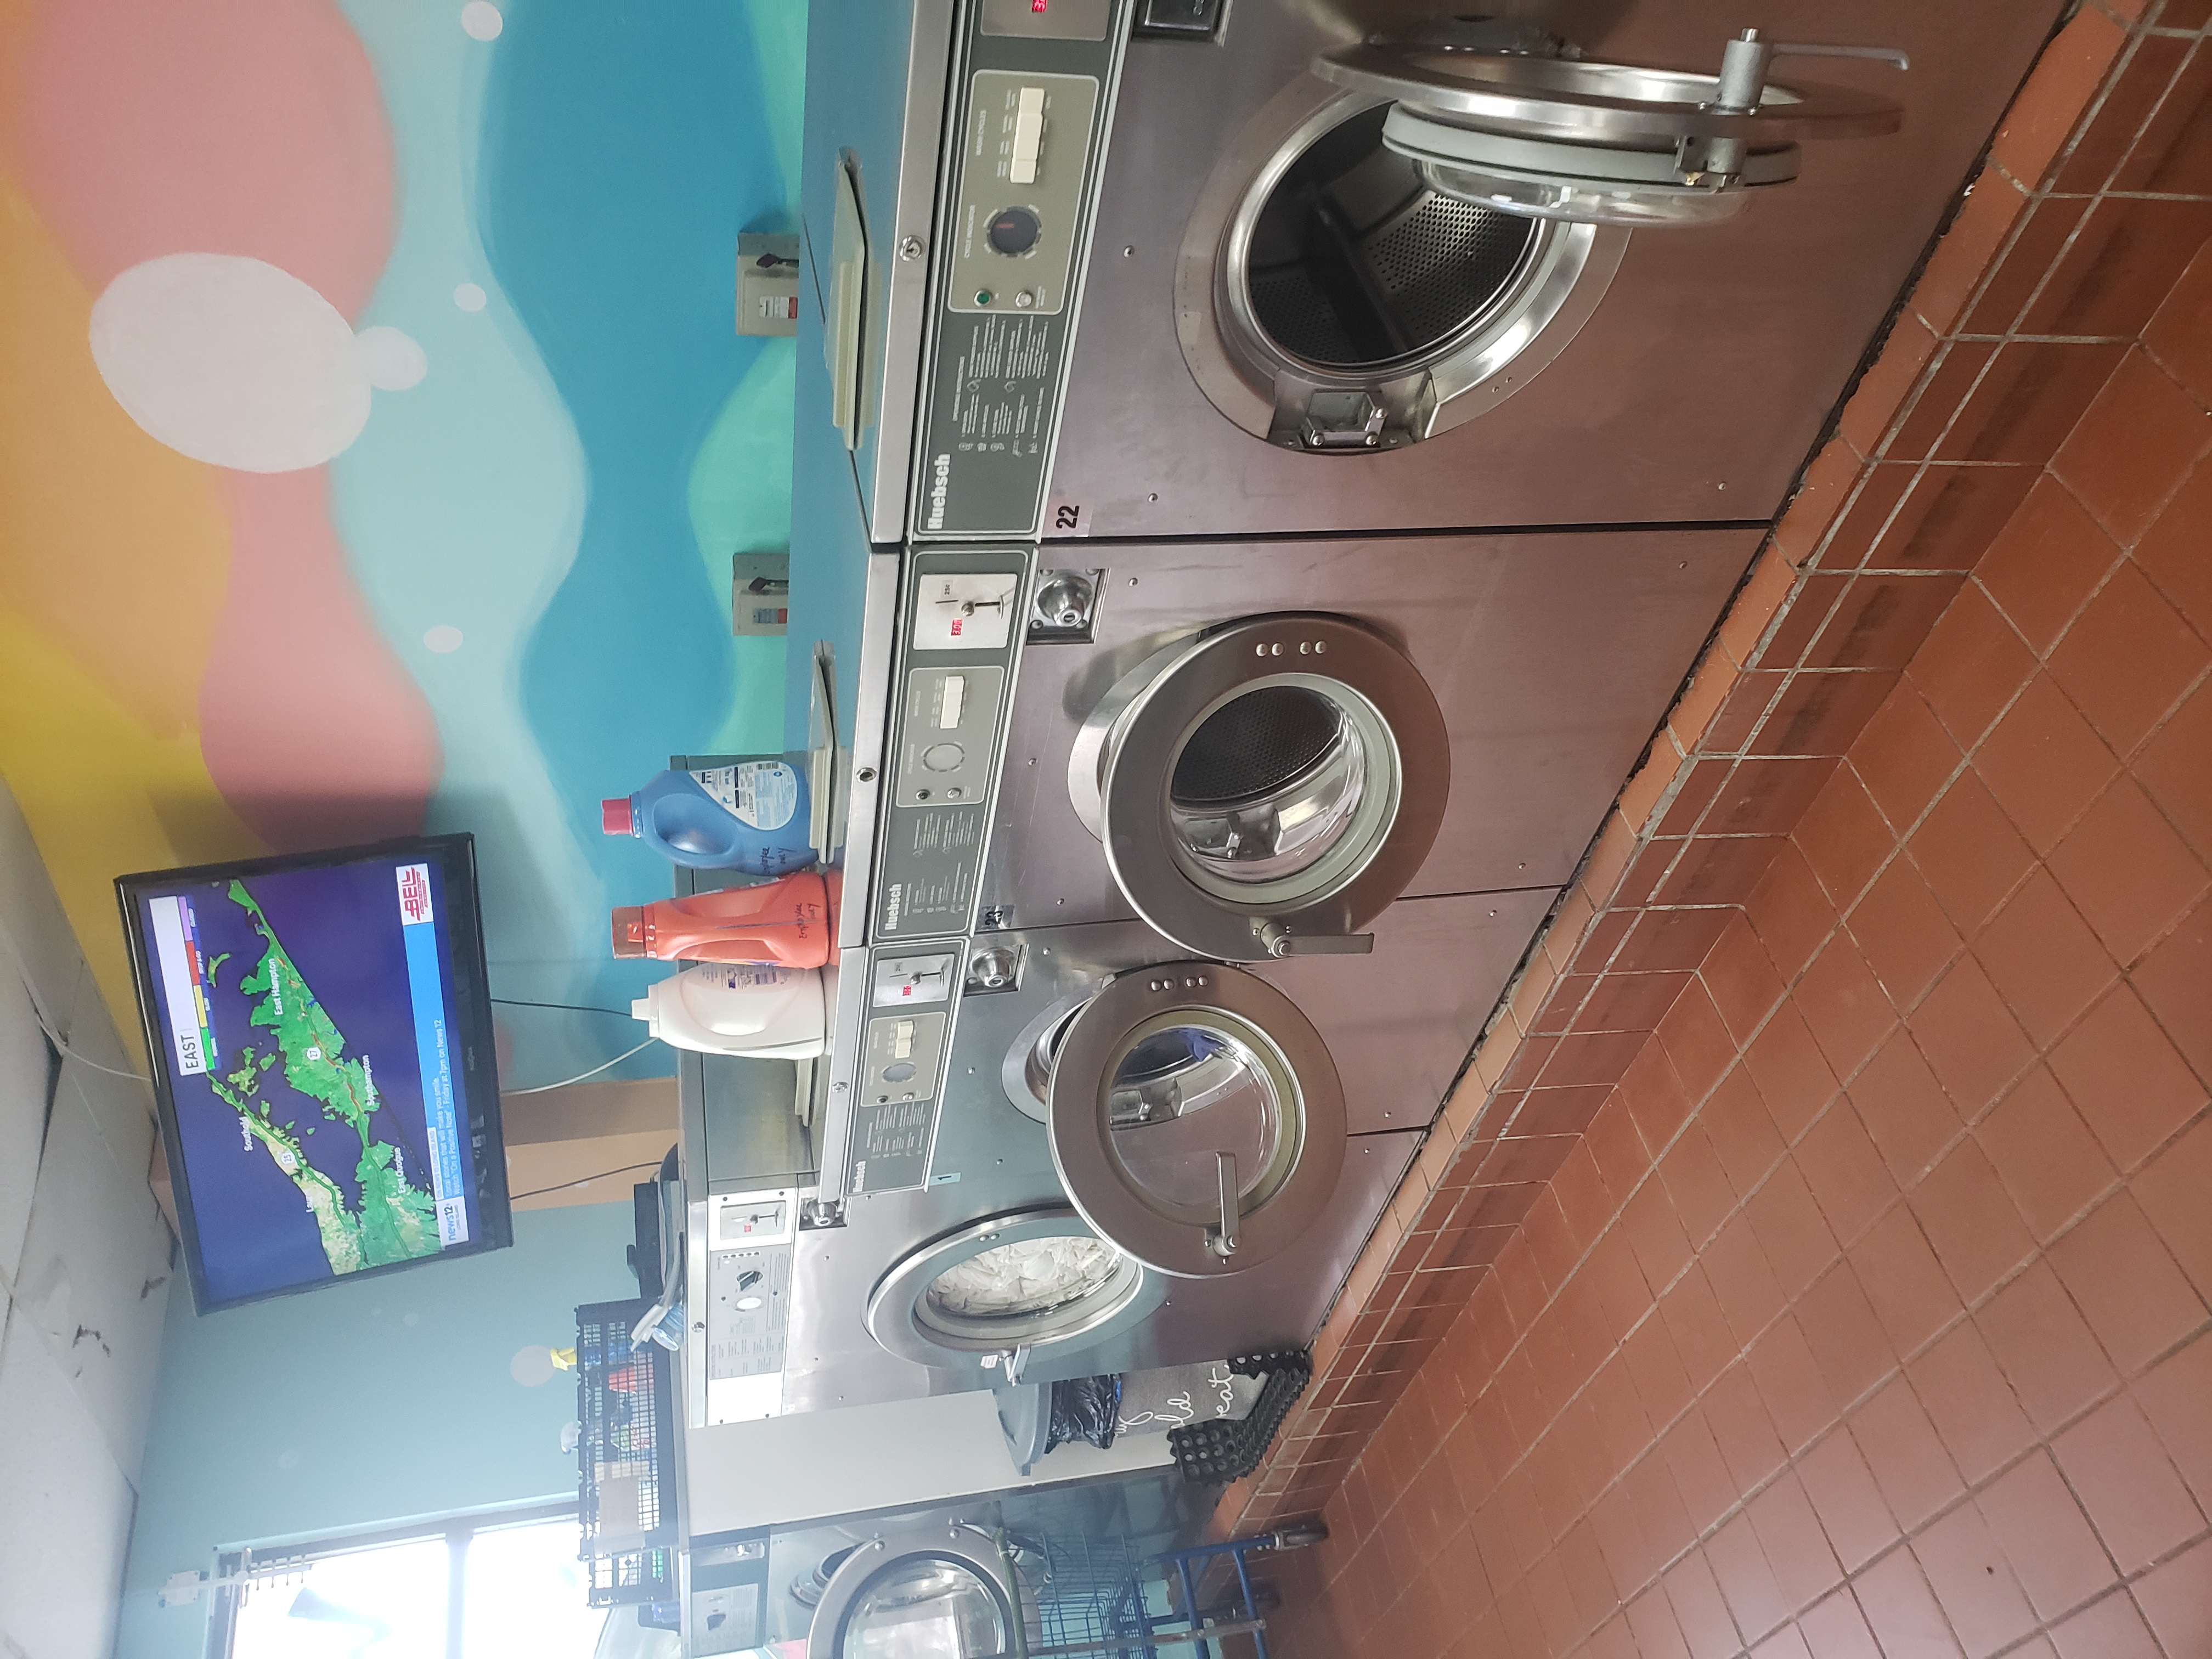 Busy Laundromat for sale in NY!